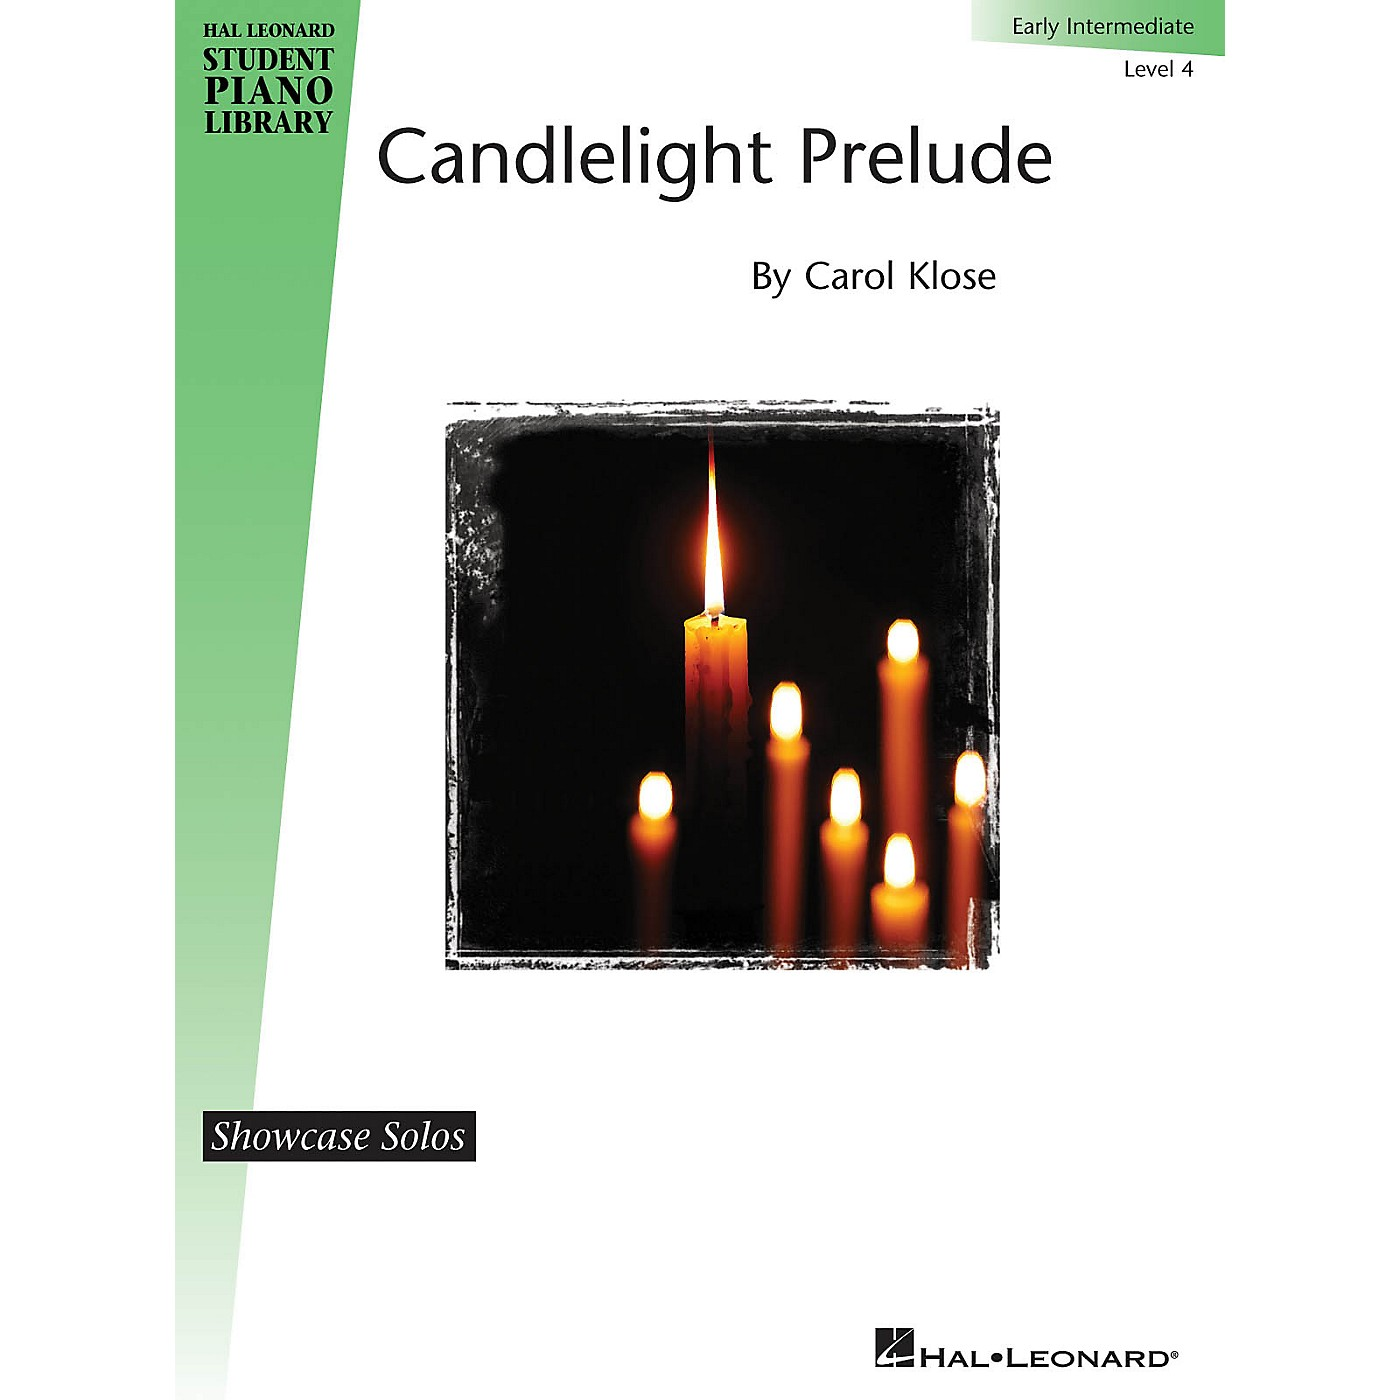 Hal Leonard Candlelight Prelude Piano Library Series by Carol Klose (Level Early Inter) thumbnail